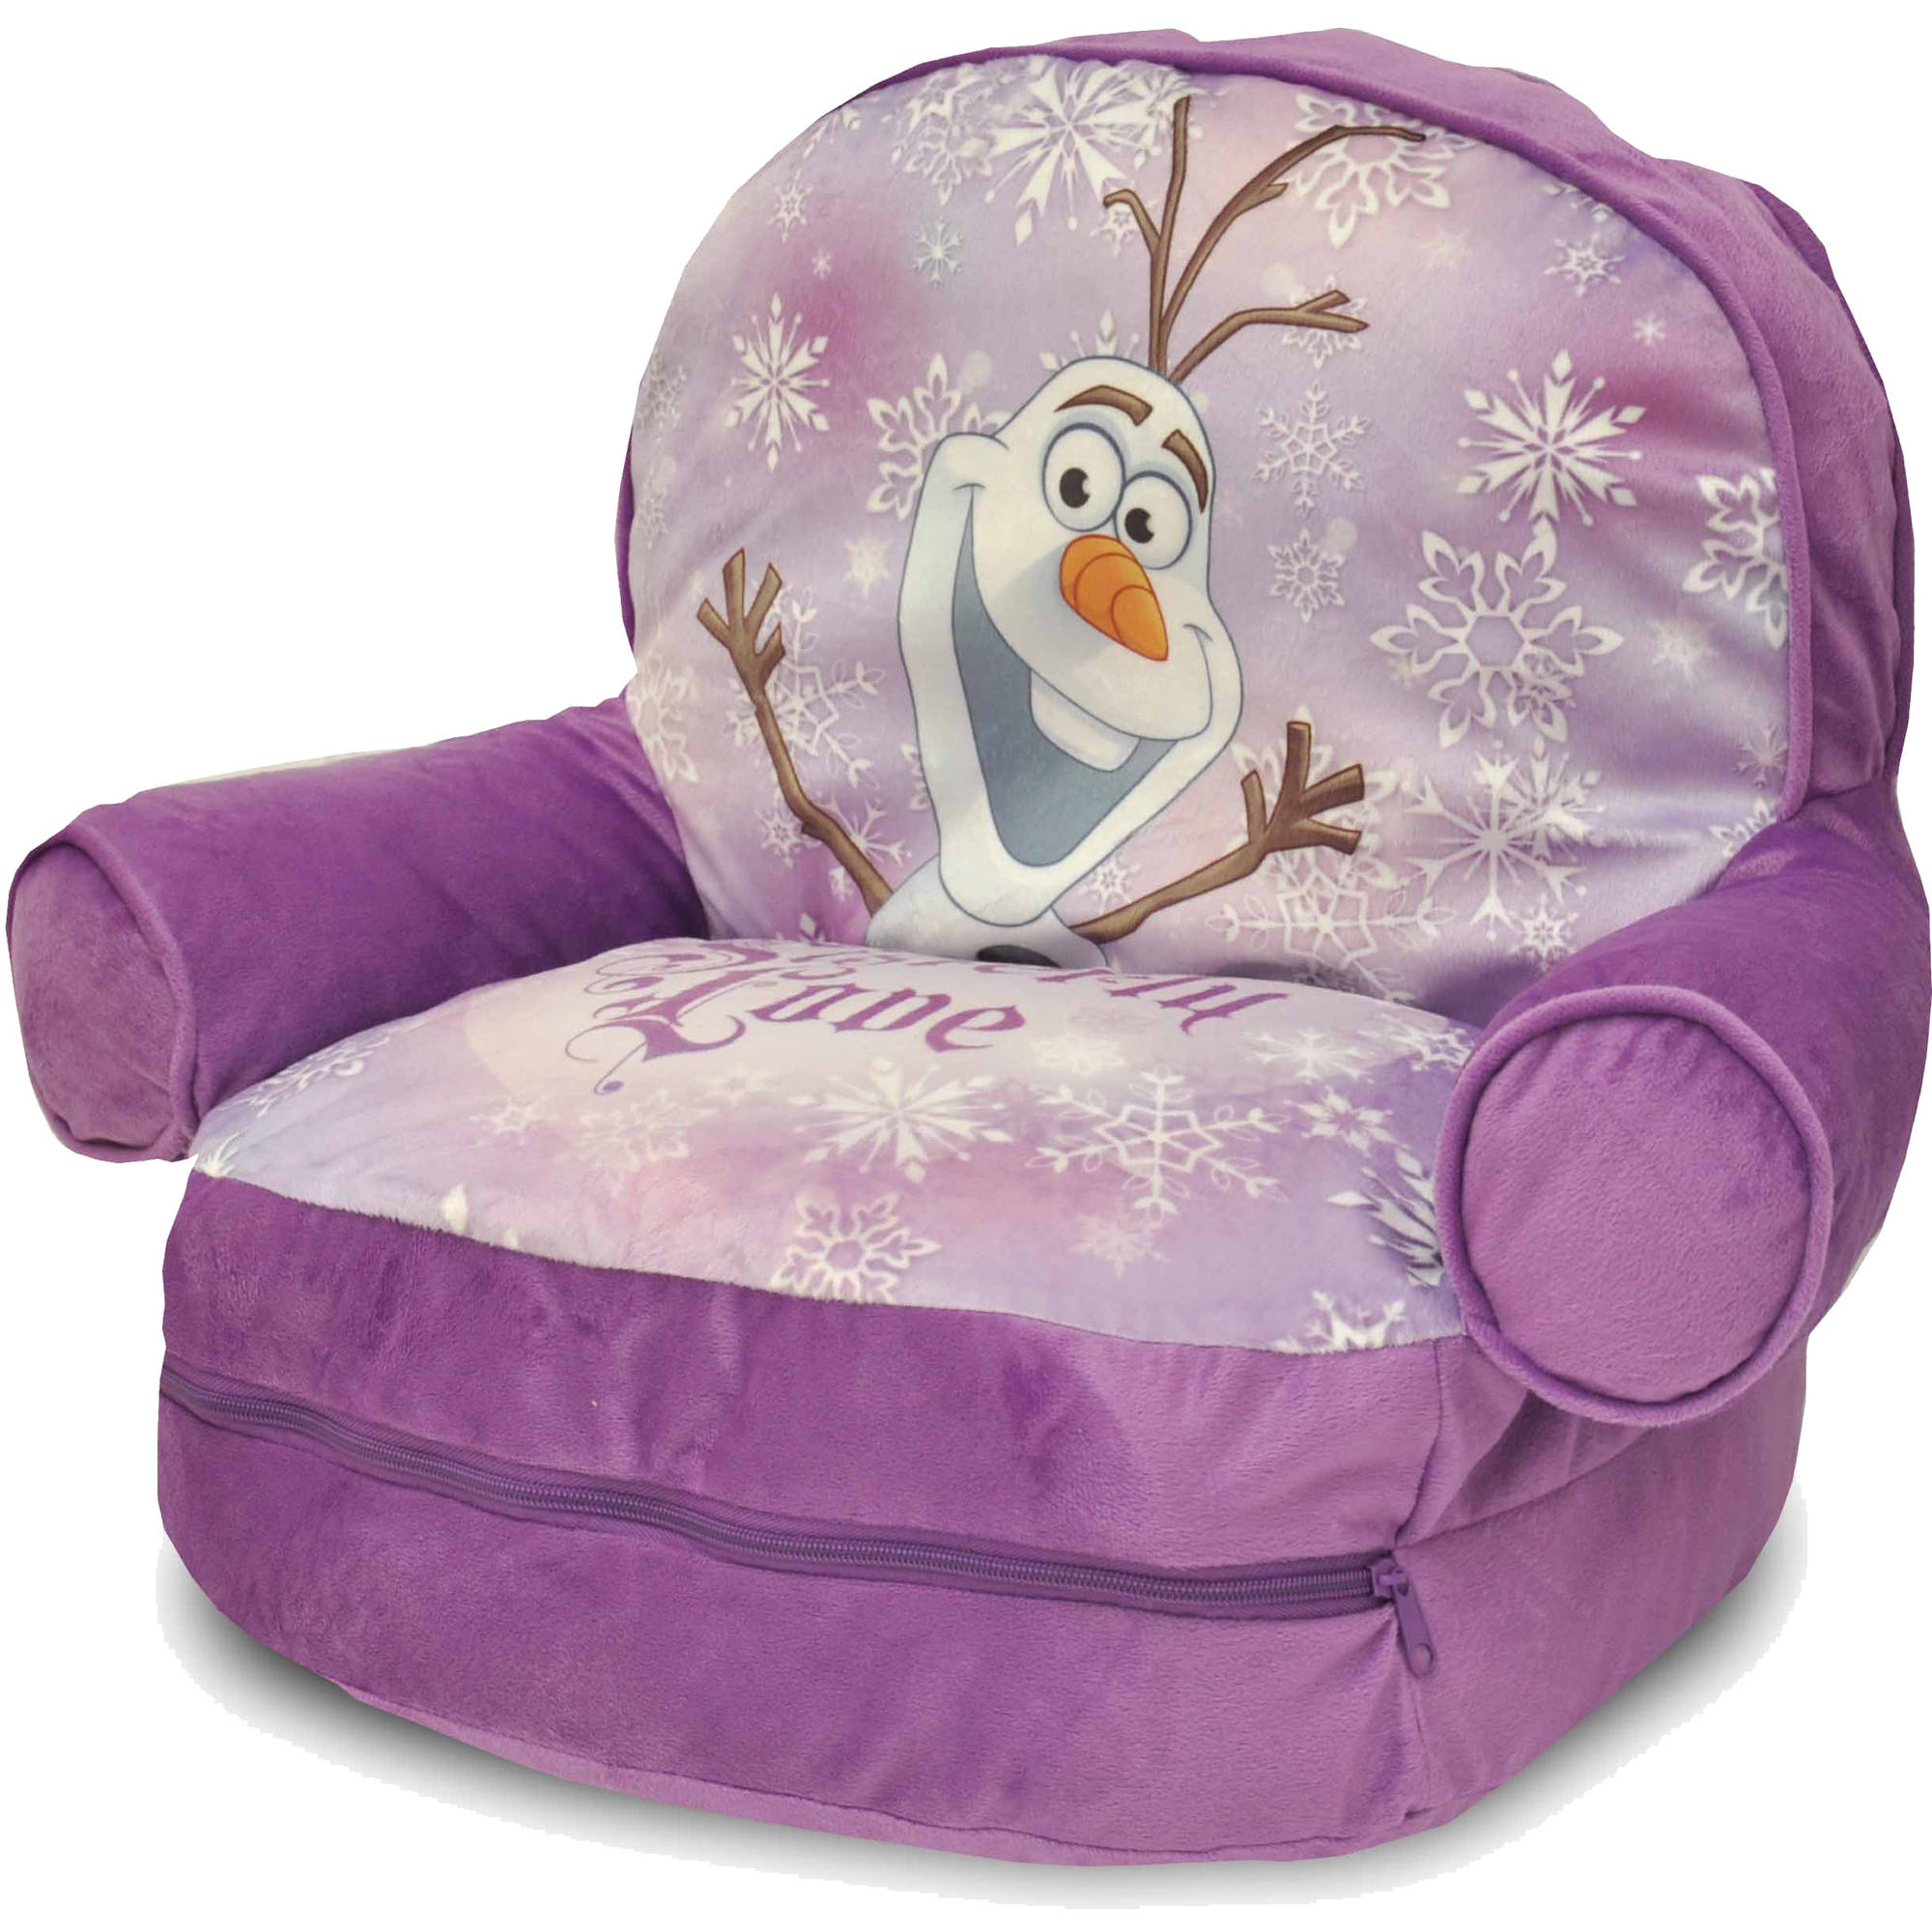 Disney Frozen Bean Bag With BONUS Slumber Walmart